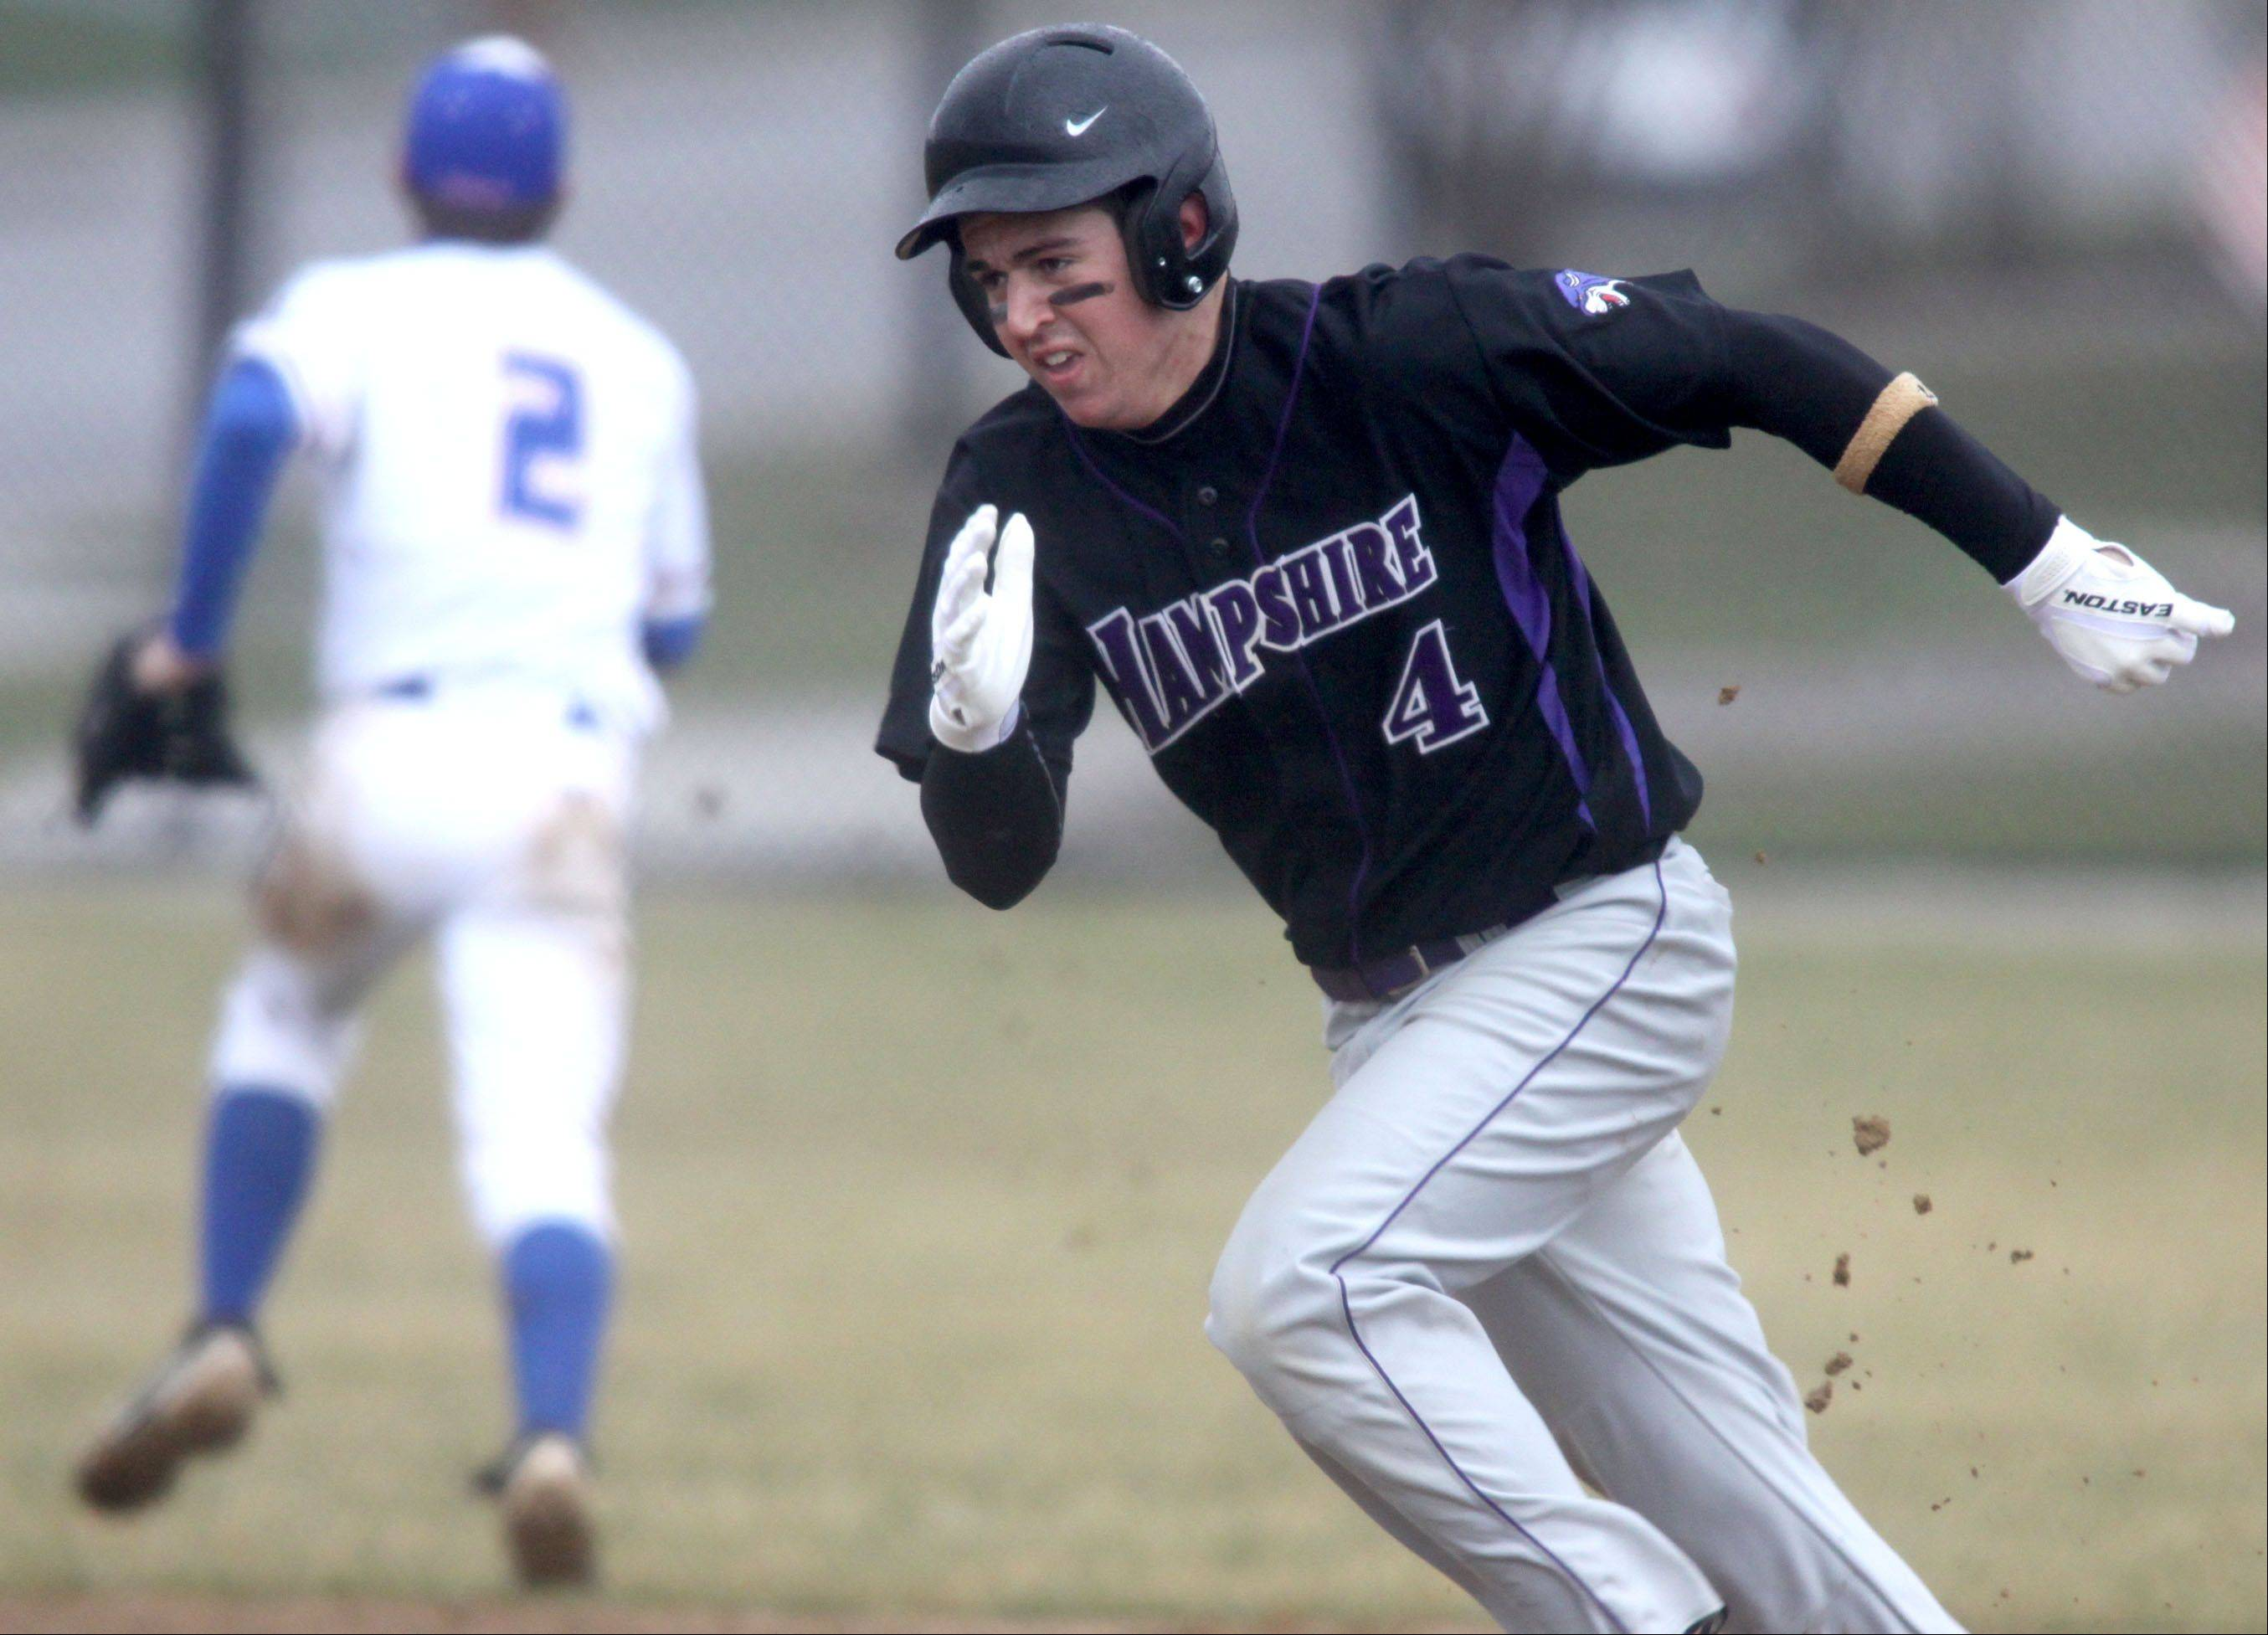 Hampshire's Michael Laramie dashes toward third base against Dundee-Crown during a varsity baseball game at Carpentersville on Friday.